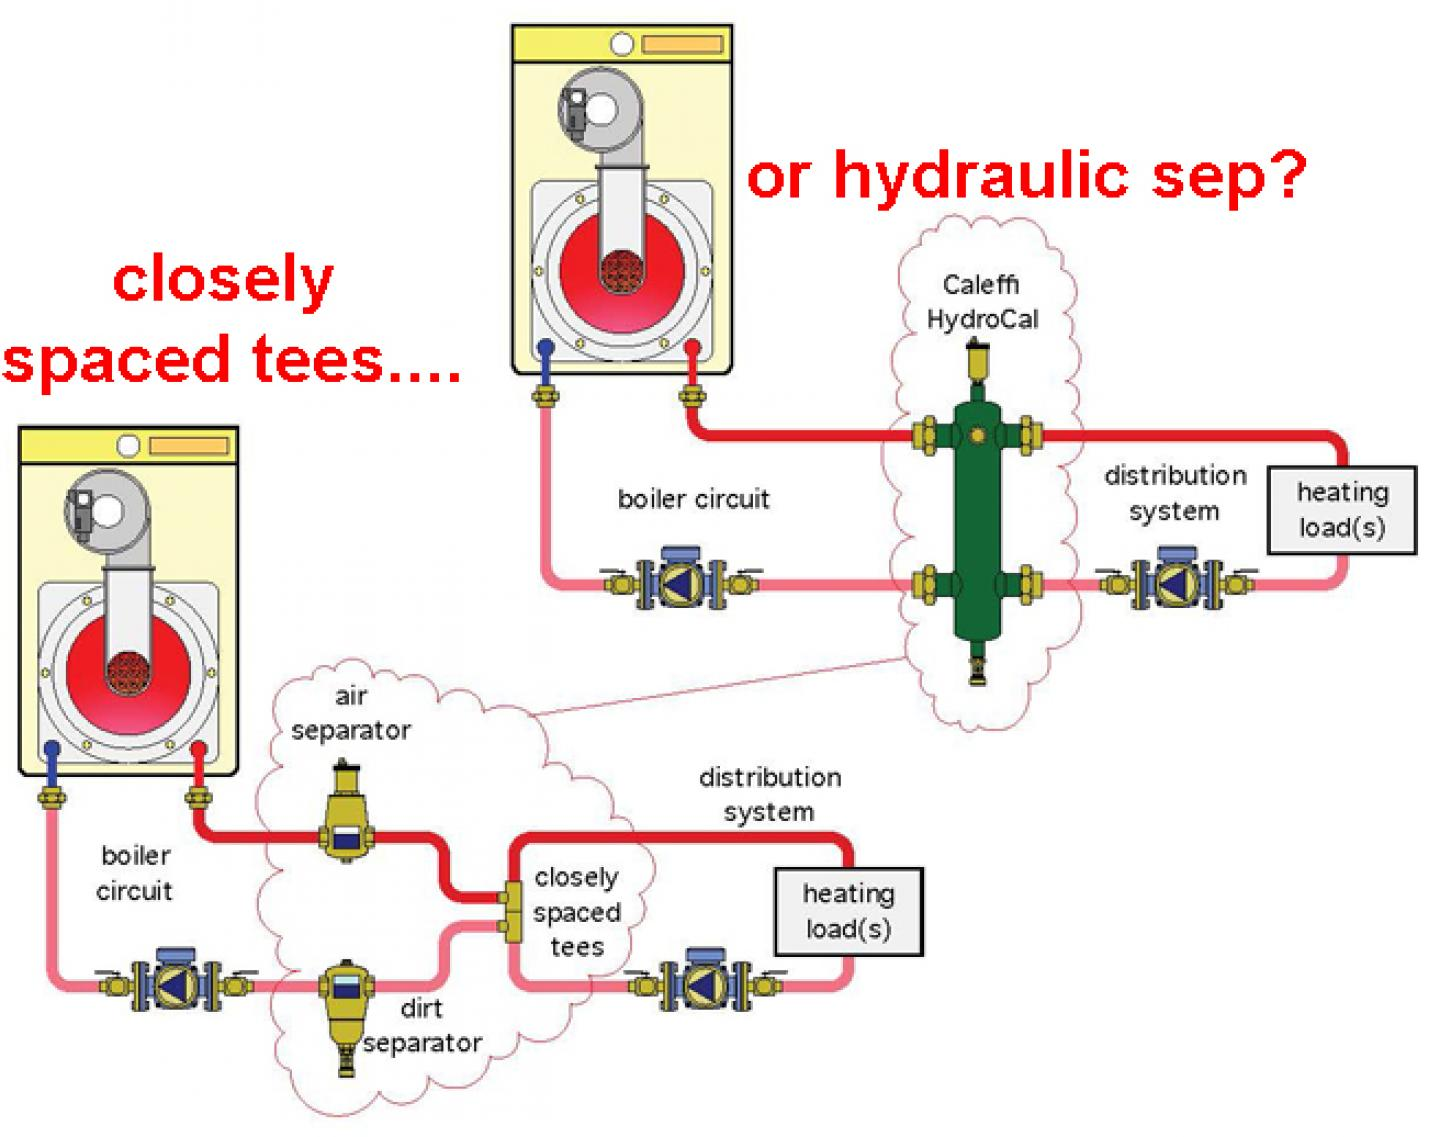 Spirovent Piping Diagram Great Installation Of Wiring Symbols Pictures Why All The Fuss About Hydraulic Separators Closely Spaced Tees Rh Caleffi Com Pump